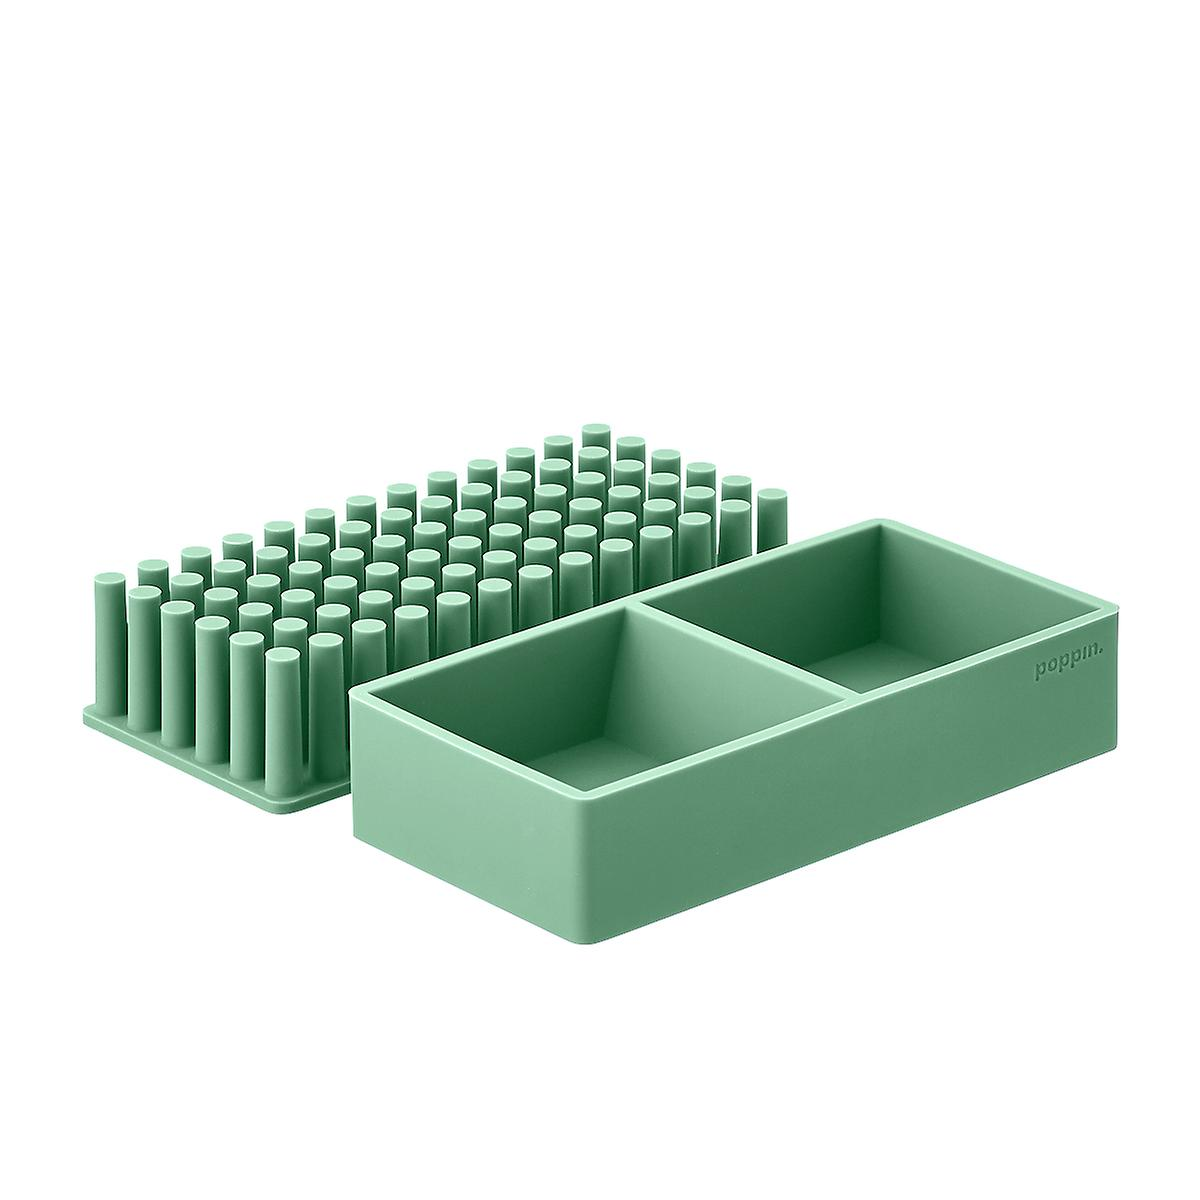 Sage Poppin Silicone Organizers